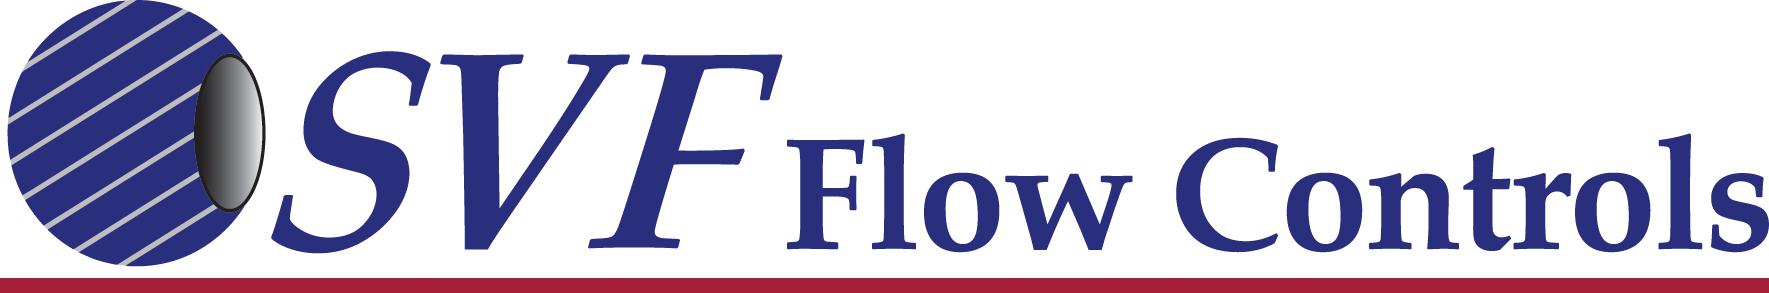 SVF Flow Controls Logo